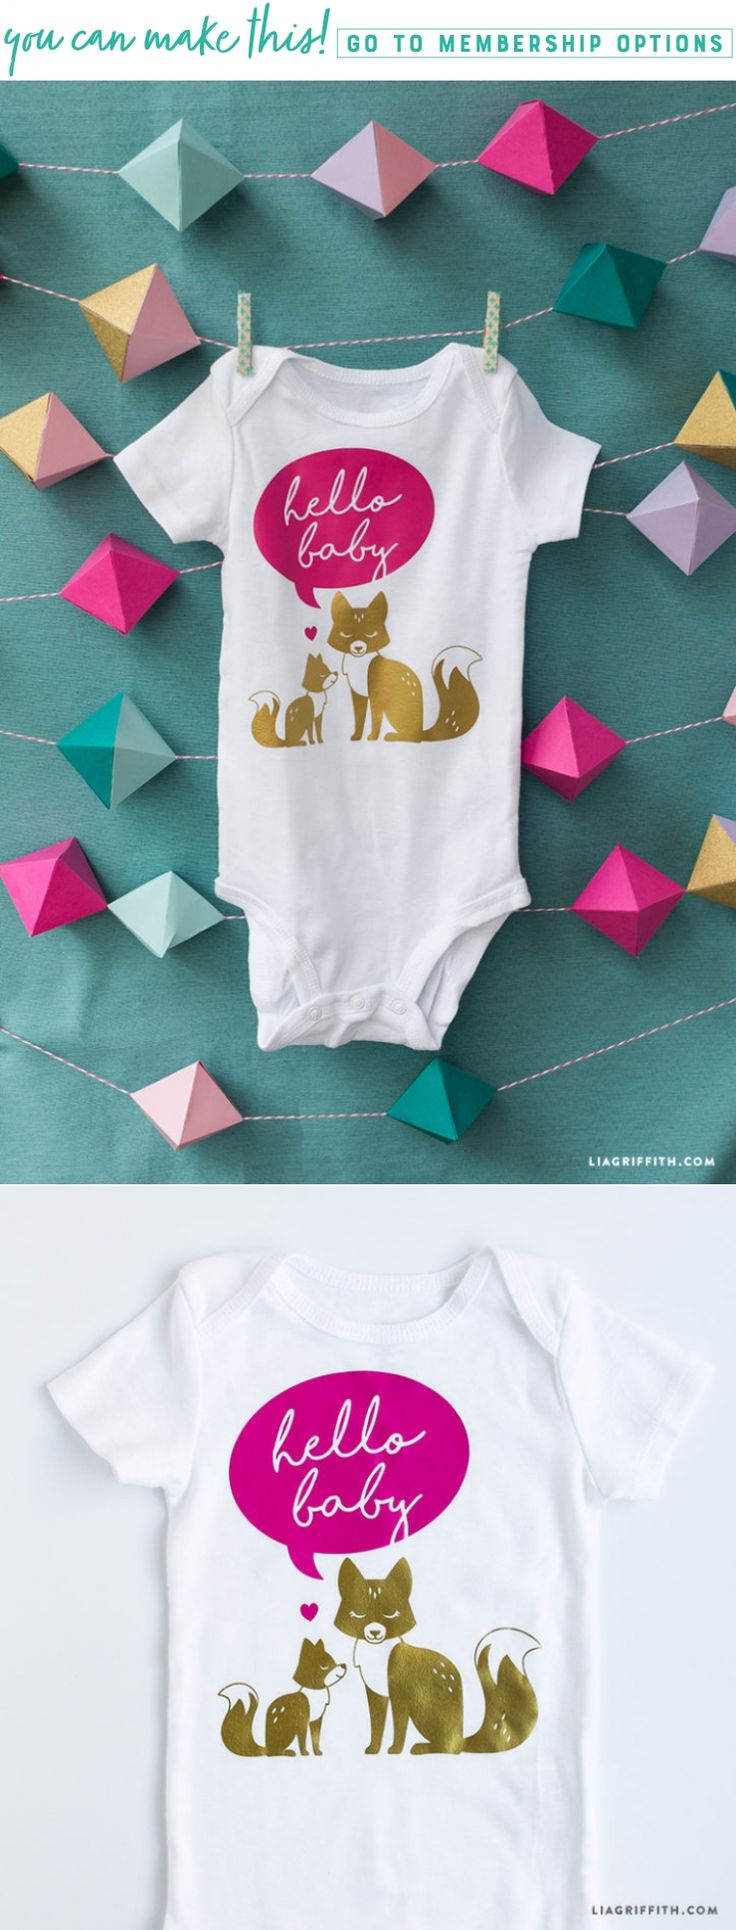 Hey Baby! 👶❤️ Welcome your little one to the world with this adorable hello baby onesie. Crafting this project is as easy as ABC. We've listed out everything you need here https://liagriffith.com/hello-baby-onesie/ * * * #baby #babies #babyshower #babyshowergifts #babyshowergifts #svg #onesie #onesies #diy #diyidea #diyideas #diycraft #diycrafts #diyinspiration #diyproject #diyprojects #authenticlia #madewithlia #ironon #babyclothes